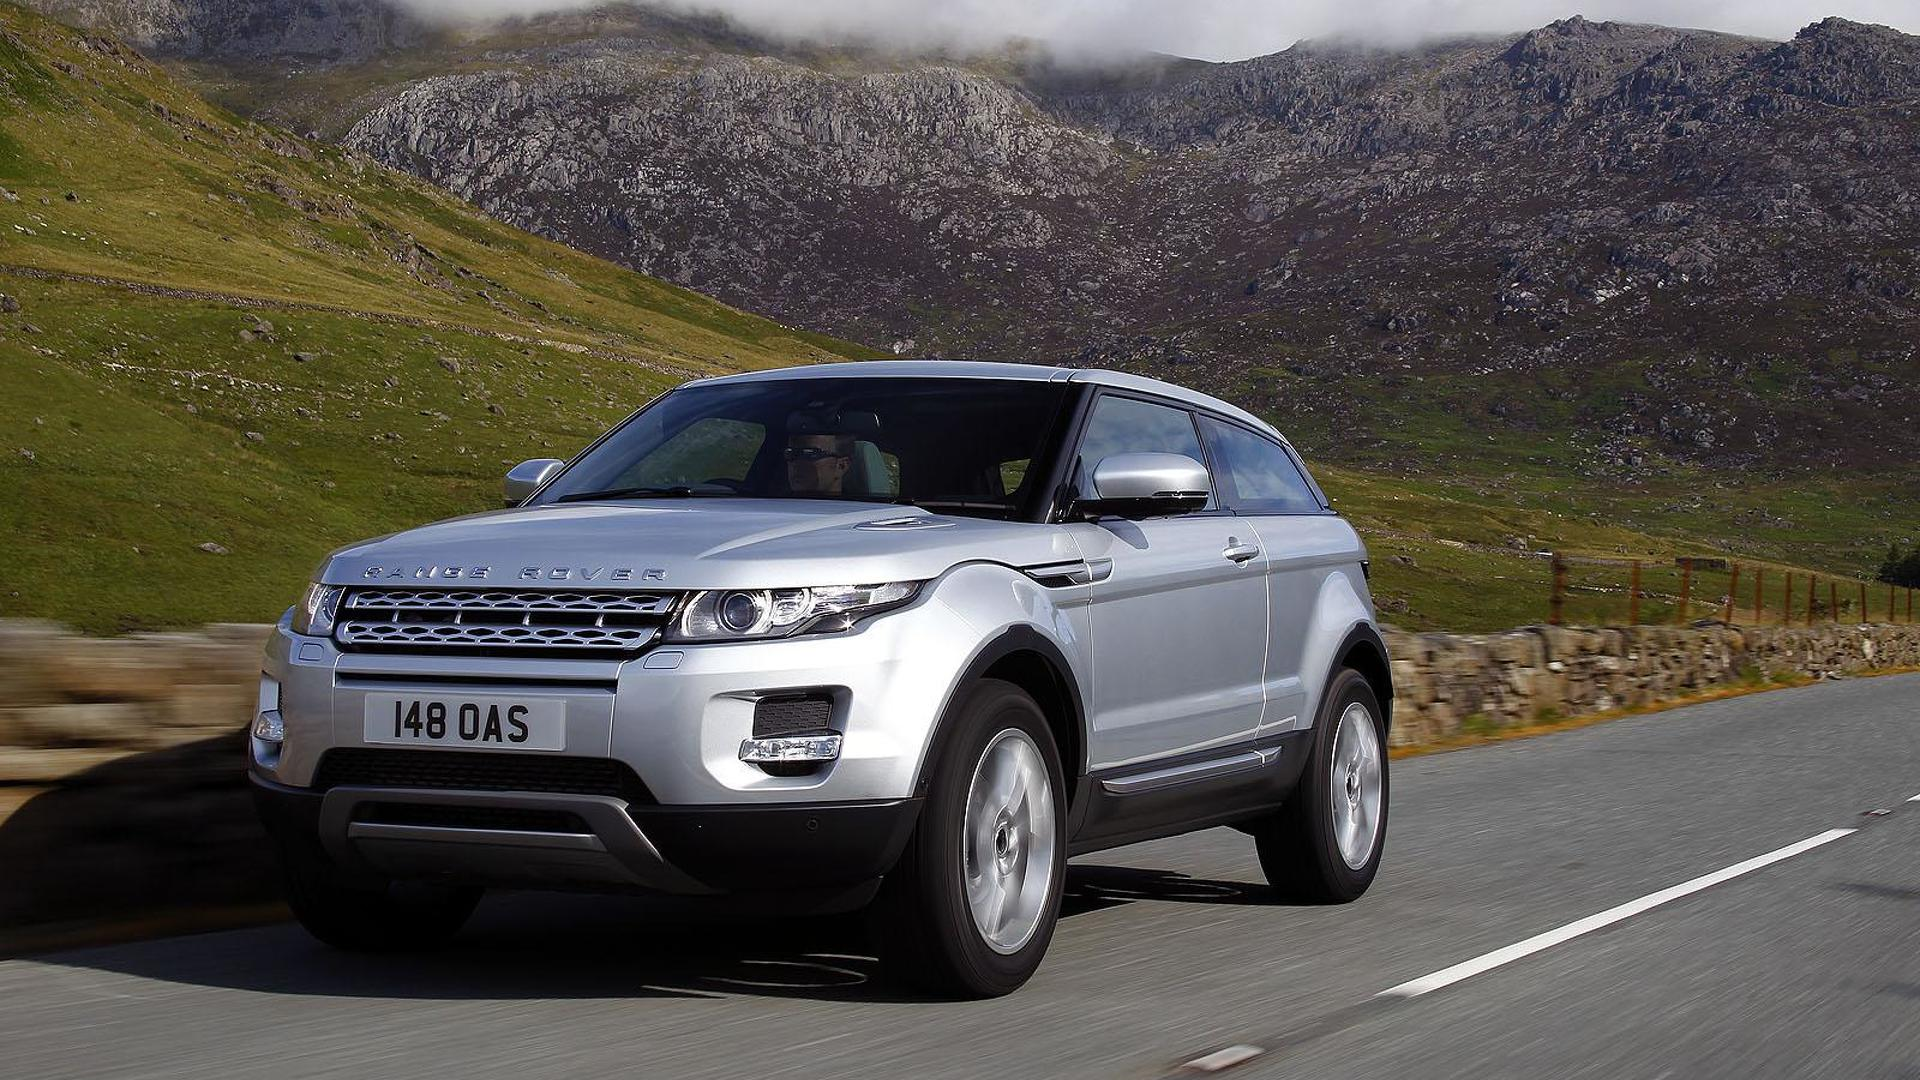 Land Rover Discovery Sport And Evoque Recalled For Suddenly Shifting Range Fuse Box Problem Into Neutral